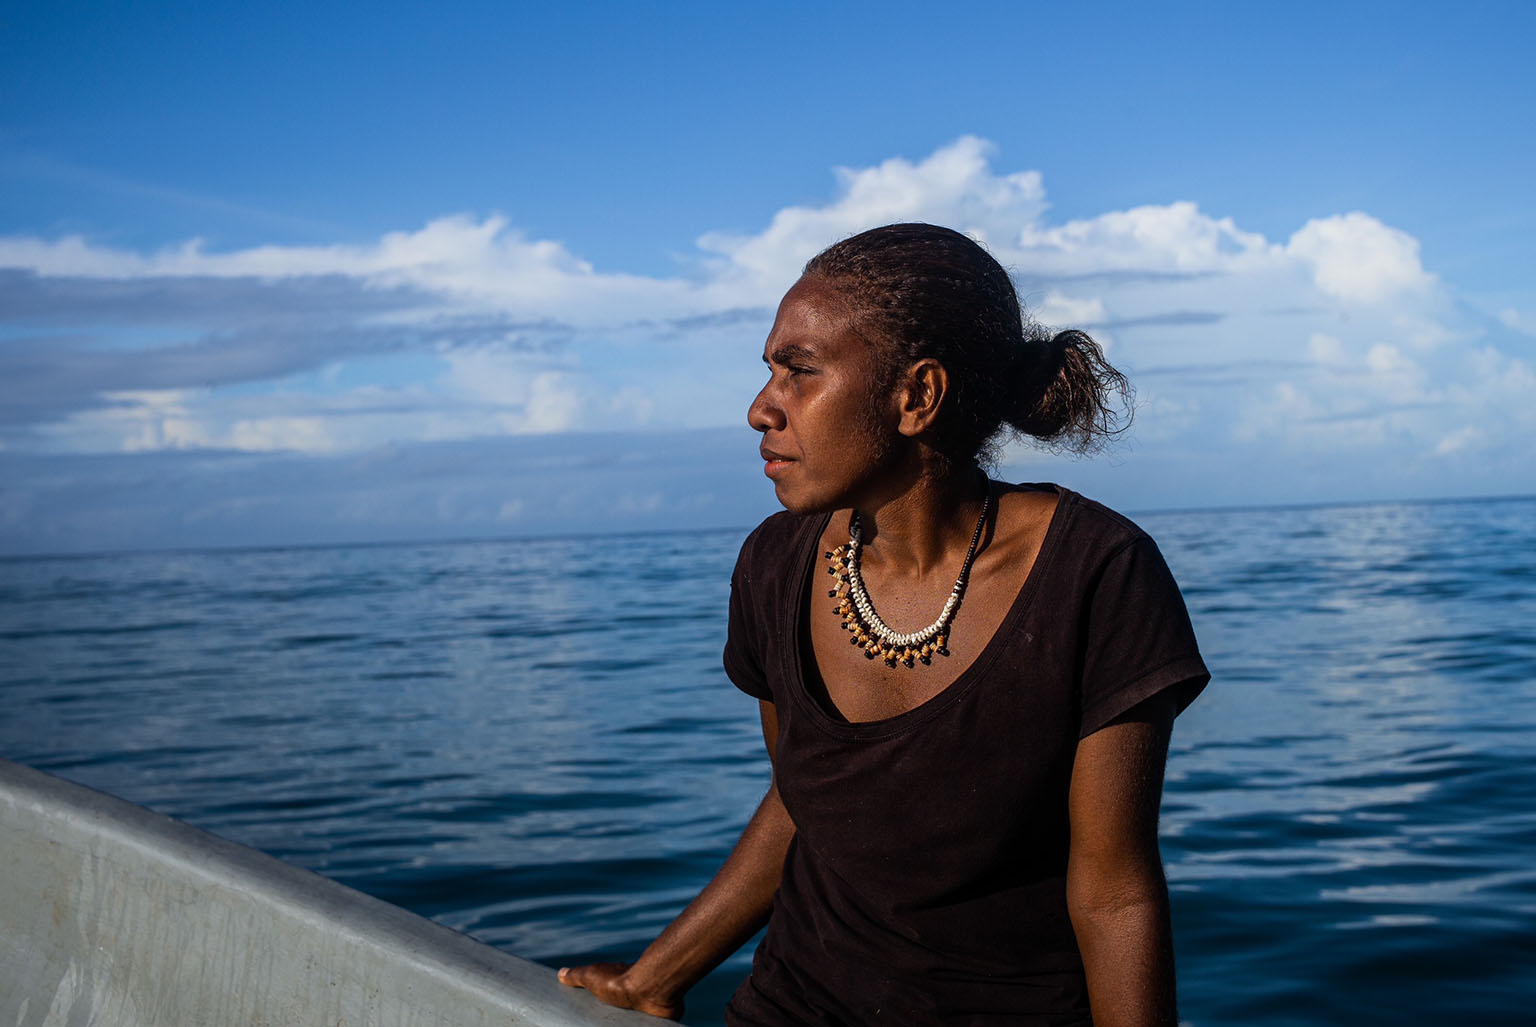 This image from the Solomon Islands, is of a young woman returning to her village by boat from Malaita Island, after a long trip to gather supplies and food. Photo credit: Daniel Lin